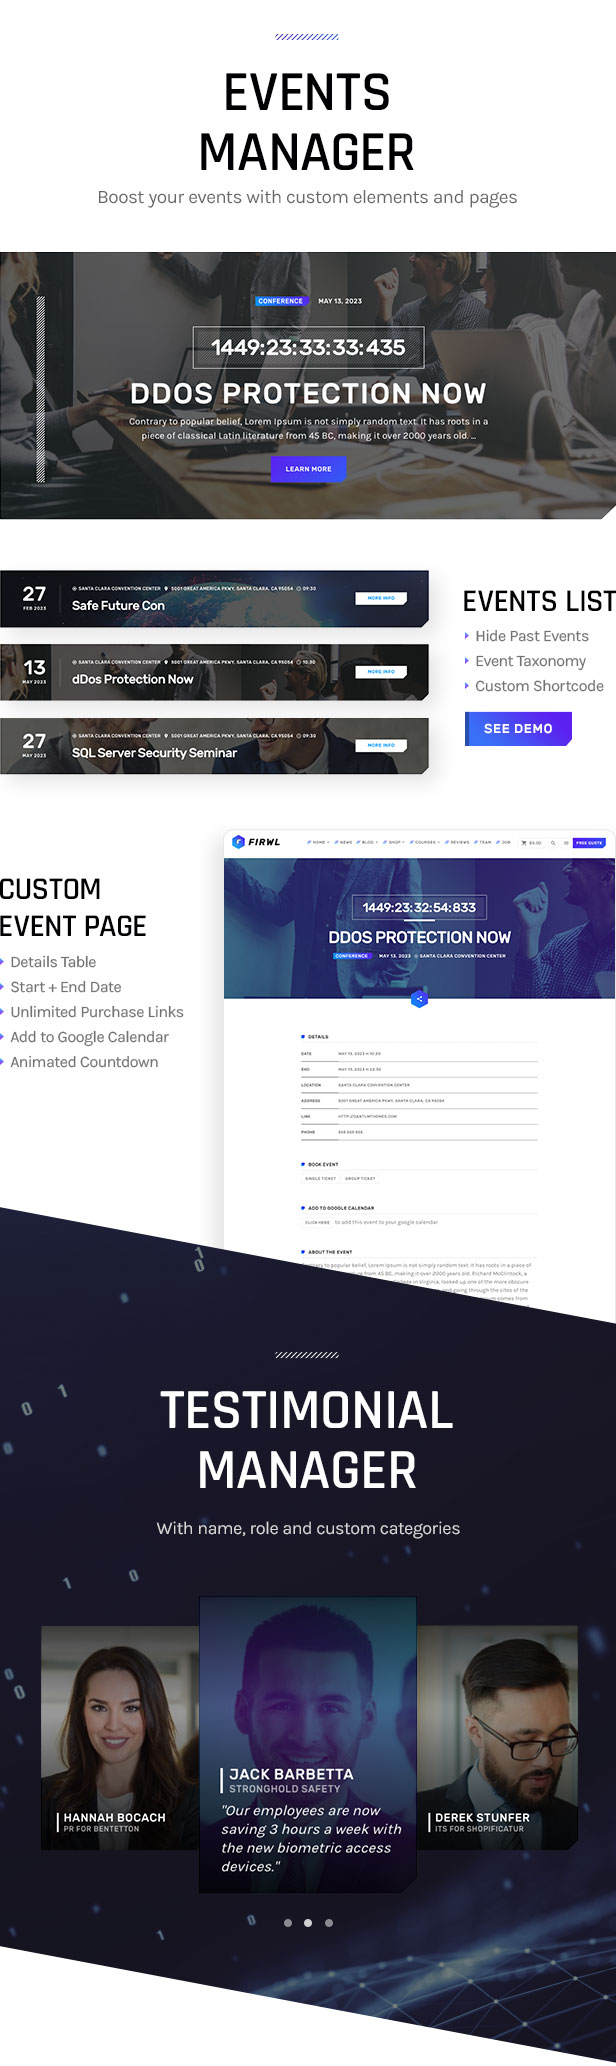 Firwl - Cyber Security WordPress Theme - 13